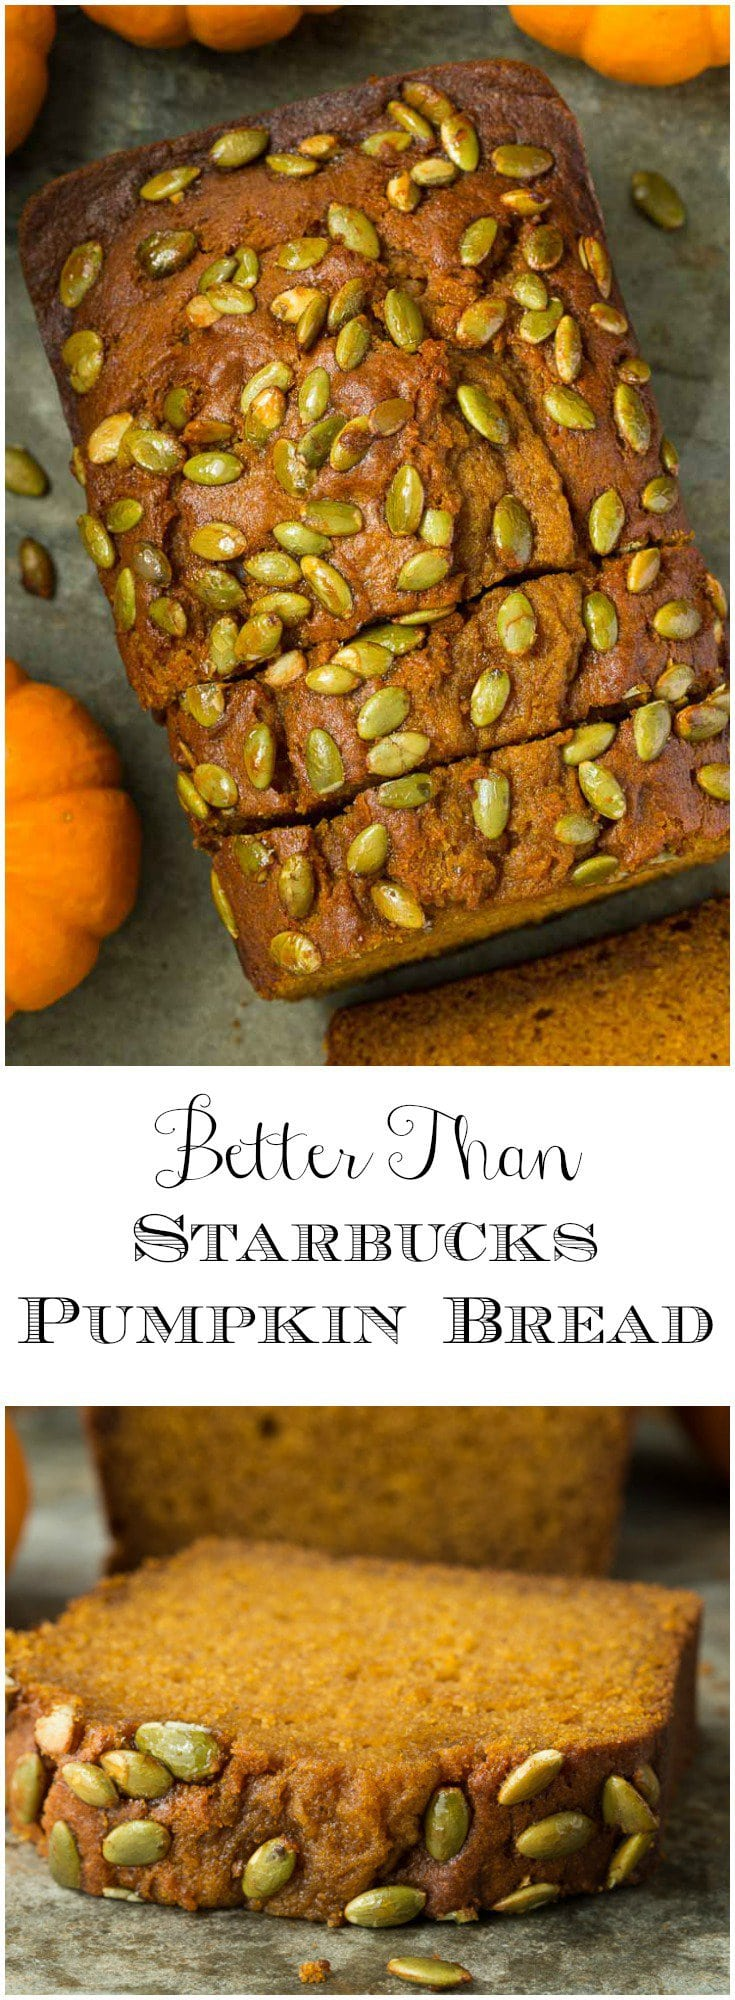 Love Starbucks Pumpkin Bread? Betcha you'll love this moist, tender, incredibly delicious Better Than Starbucks Pumpkin Bread even more!